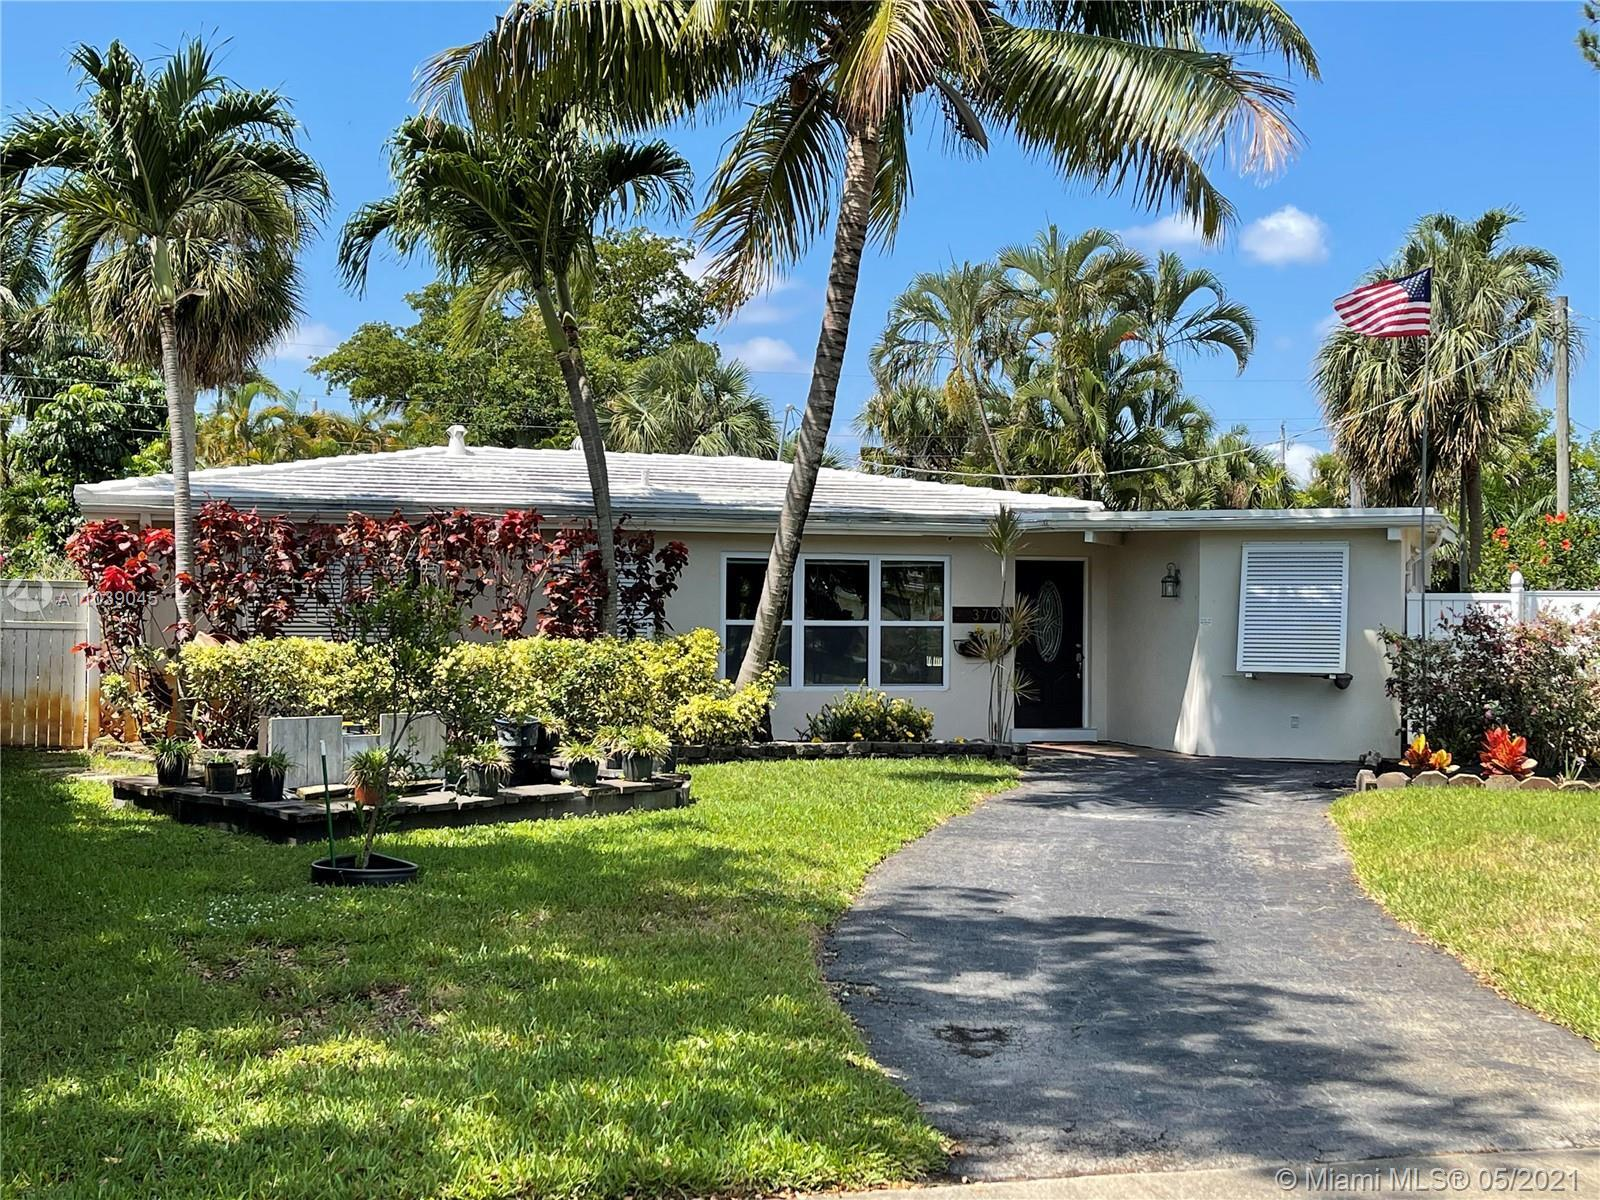 **CALL EDWARD FOR IMMEDIATE SHOWING 954 604 7577** GORGEOUS 3 Bedroom, 2 bath home in the very highl